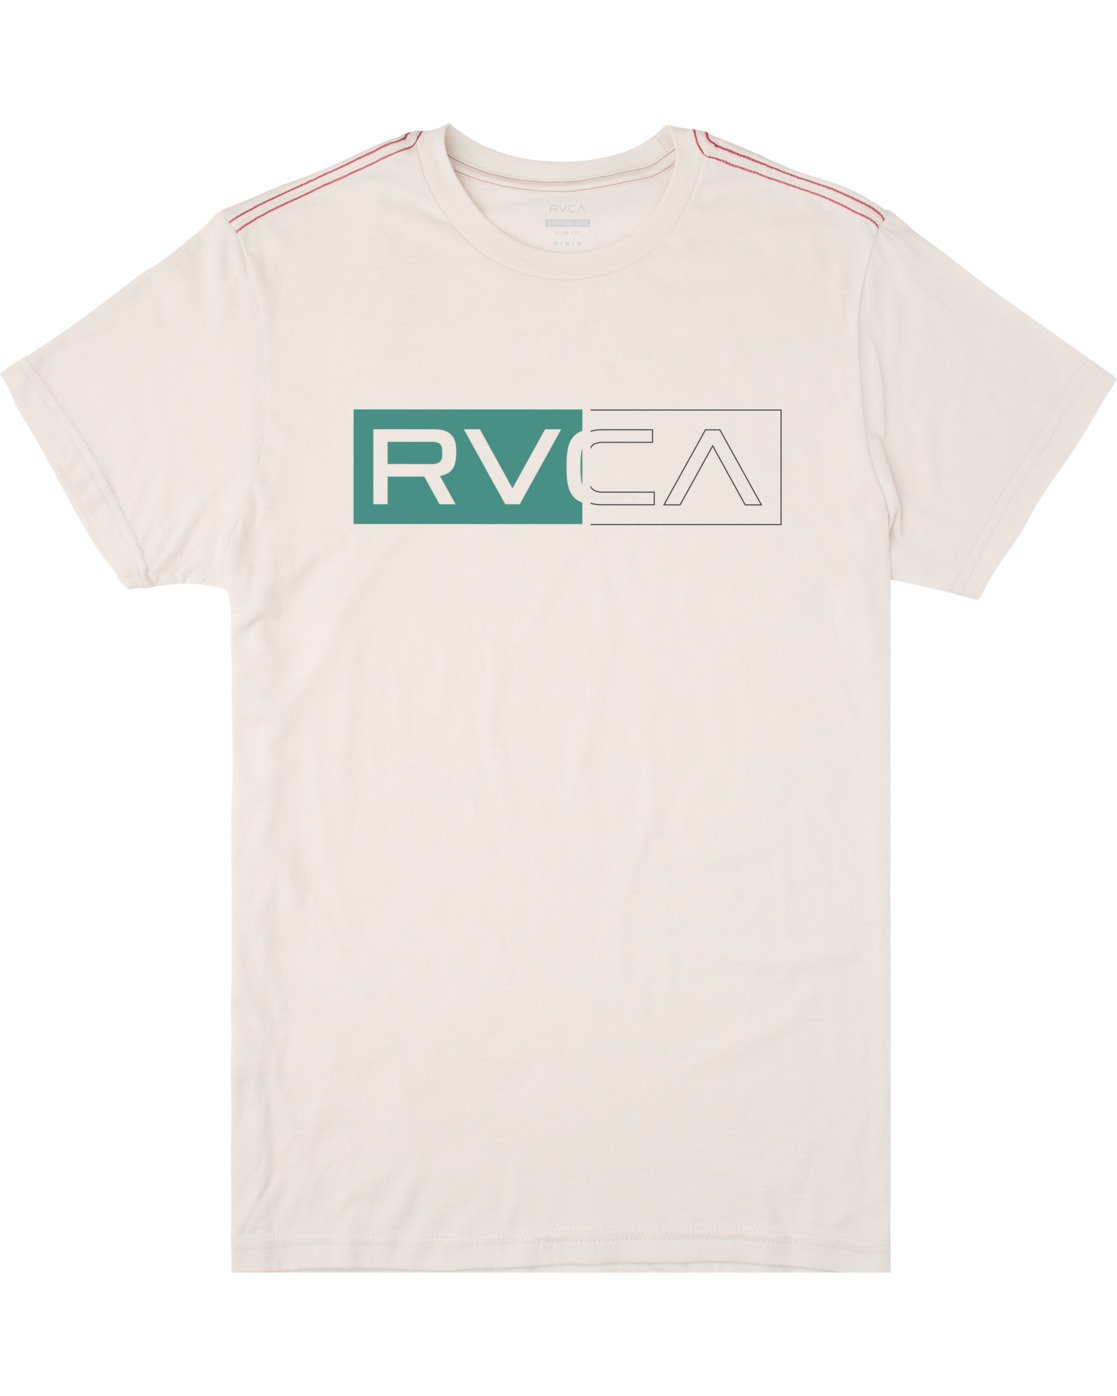 0 BOYS DIVIDER SHORT SLEEVE TEE White AVBZT00103 RVCA